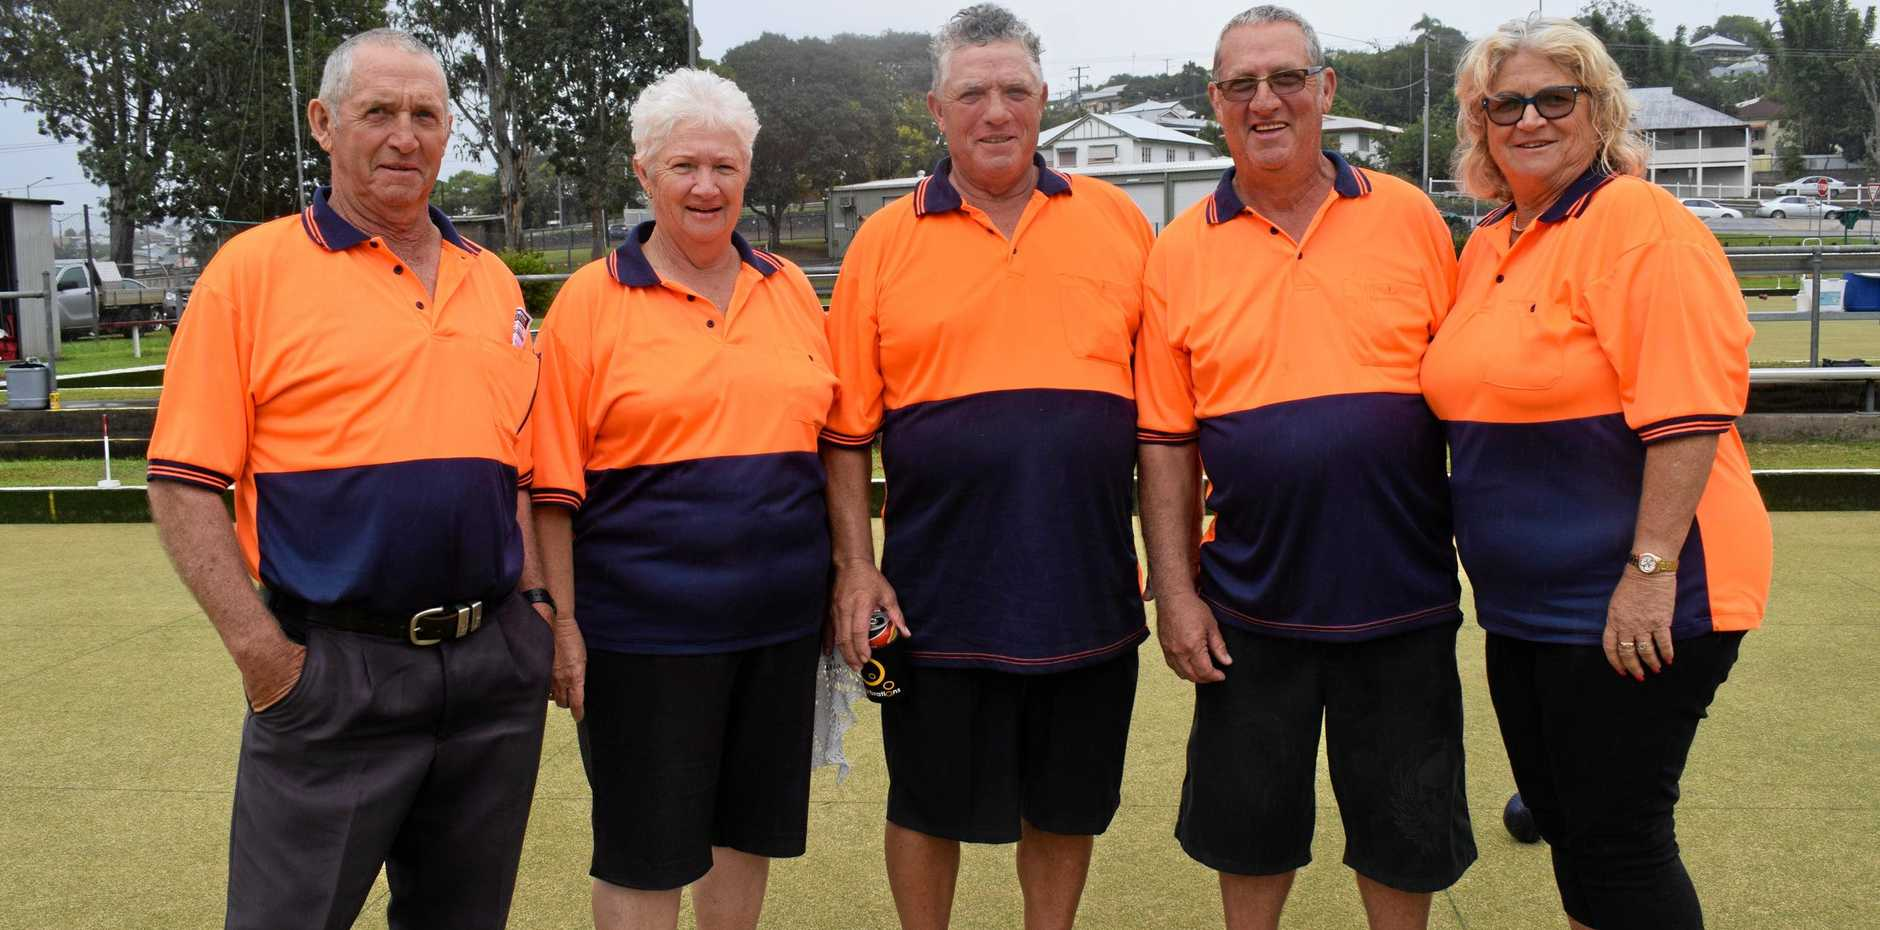 WORTHWHILE: Siblings Jeff Worth, Dell Stretton, Peter Worth, Charlie Worth and Janelle Walker at the Albert Park Bowls Club tournament on Sunday.